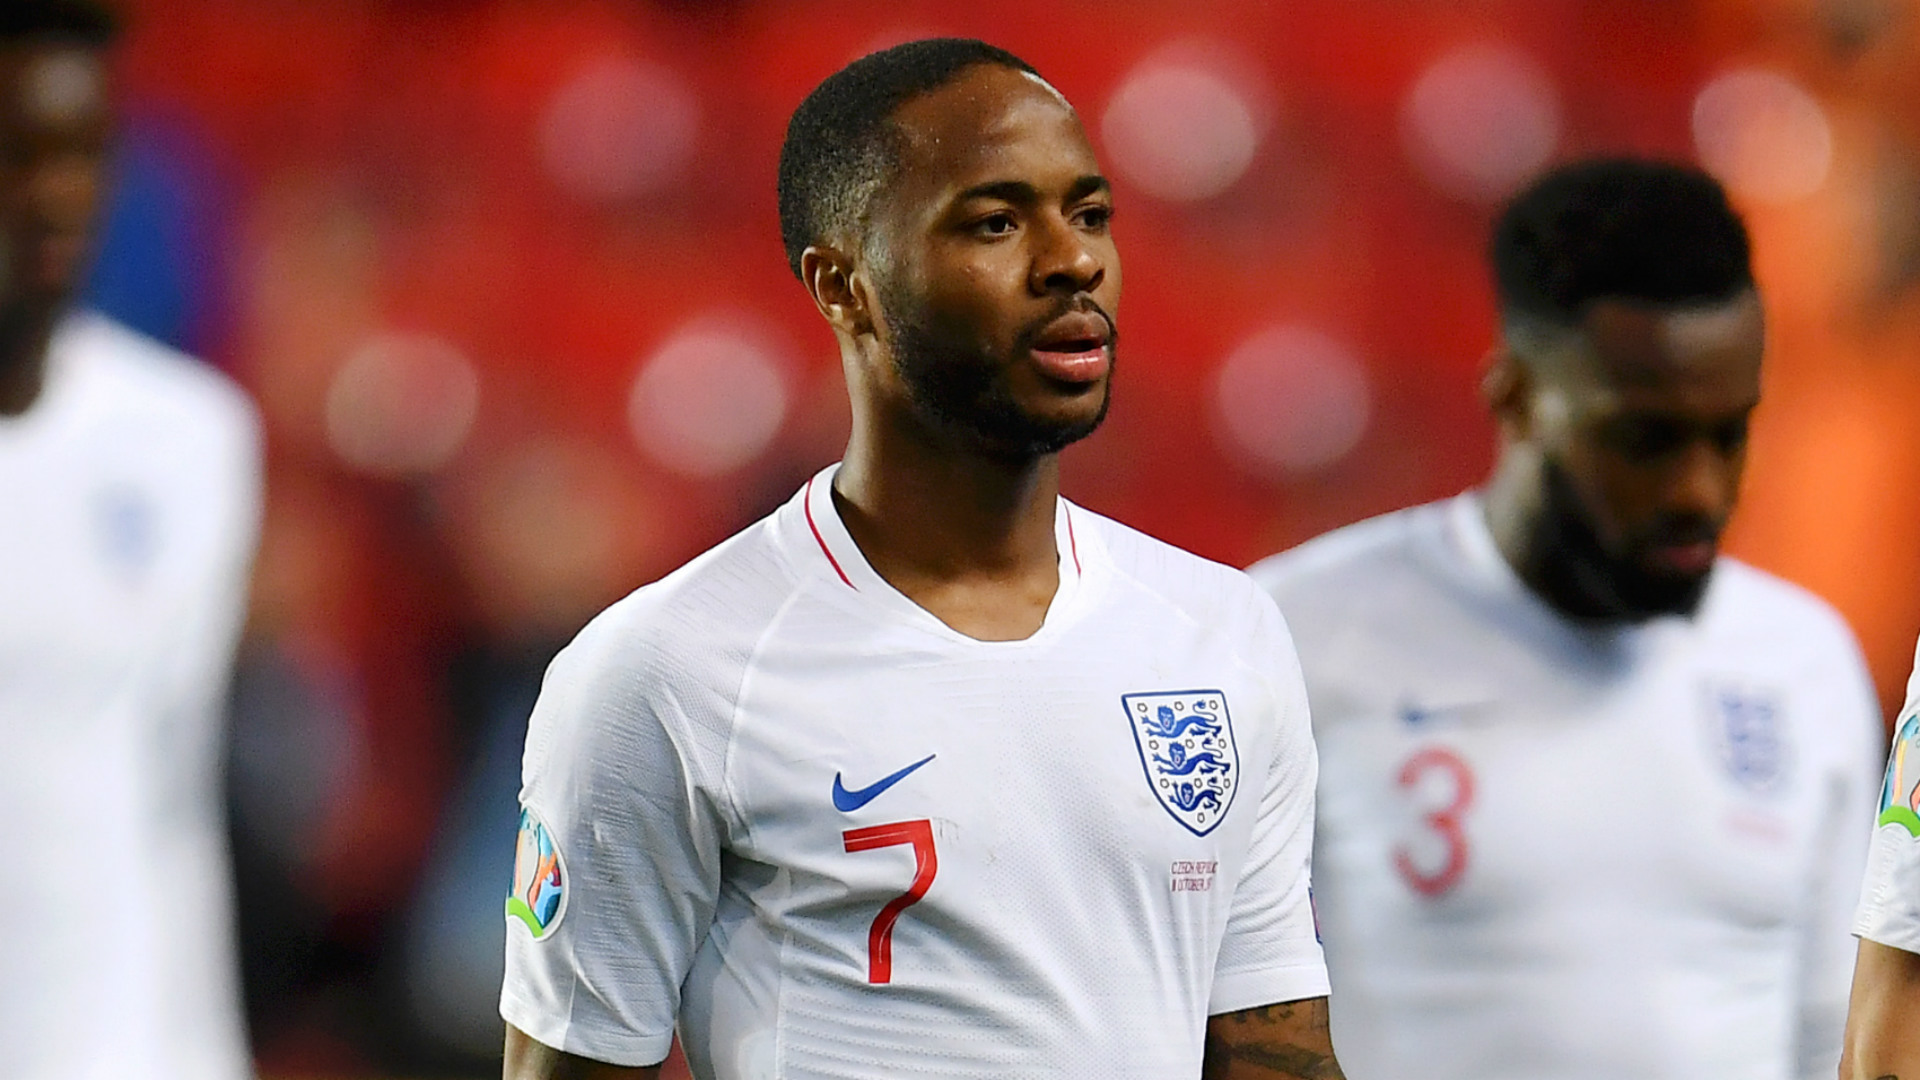 'Sterling should've been sent home' – Man City forward staying in squad after Gomez spat surprises former England defender